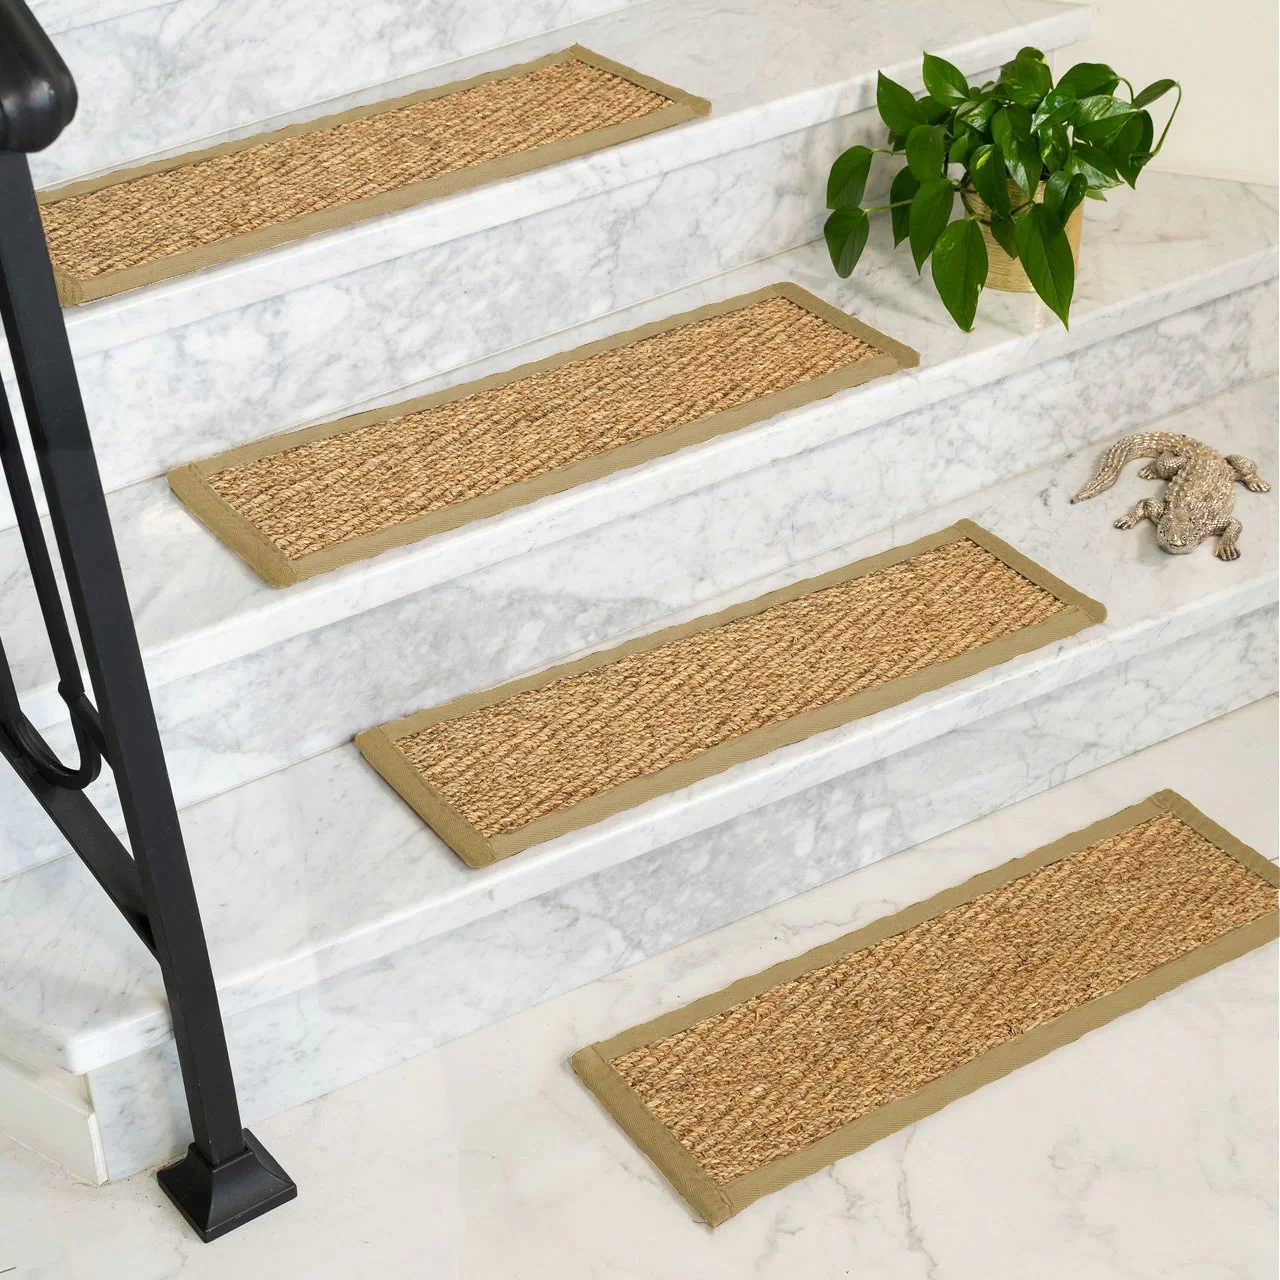 Rosecliff Heights Soperton Seagrass Carpet Stair Tread Reviews | Rug Treads For Steps | Creative | Covering | Residential | Oak | Turquoise